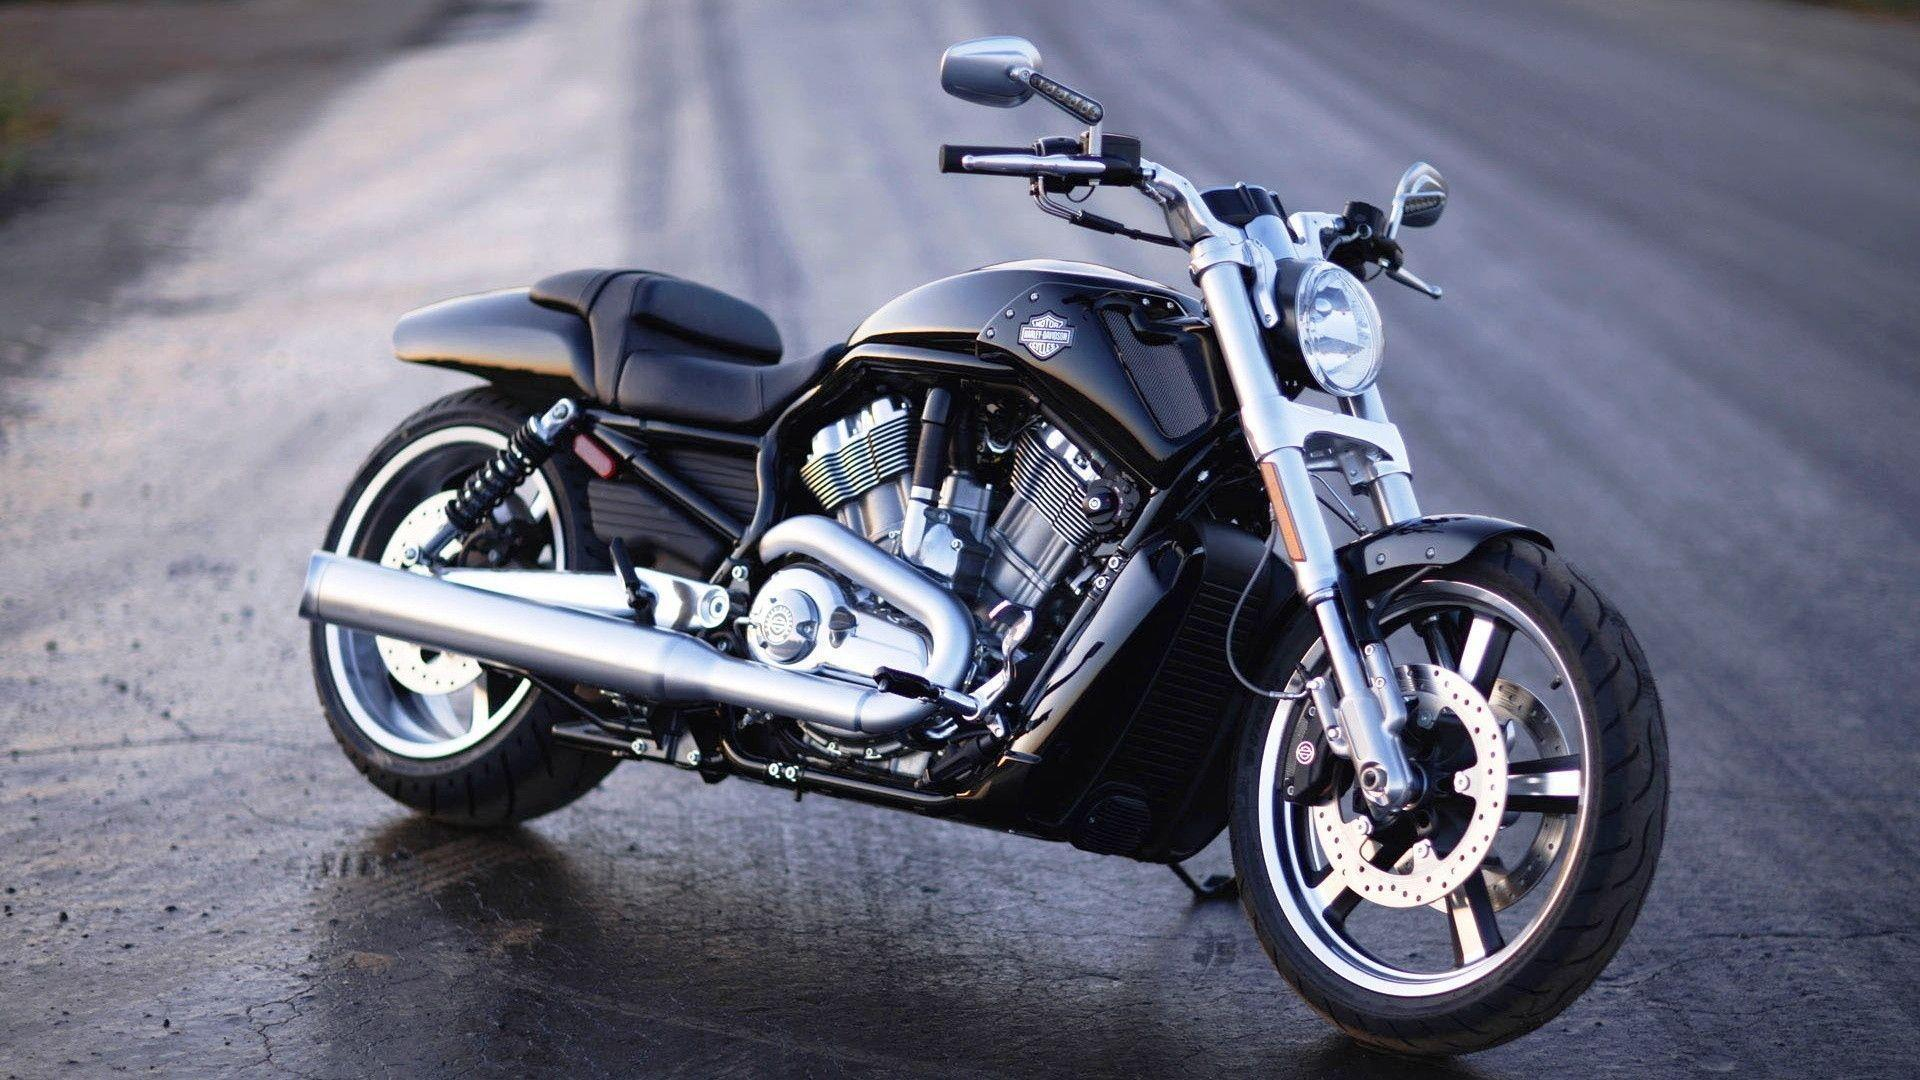 Harley Davidson V Rod Muscle Wallpapers - Wallpaper Cave